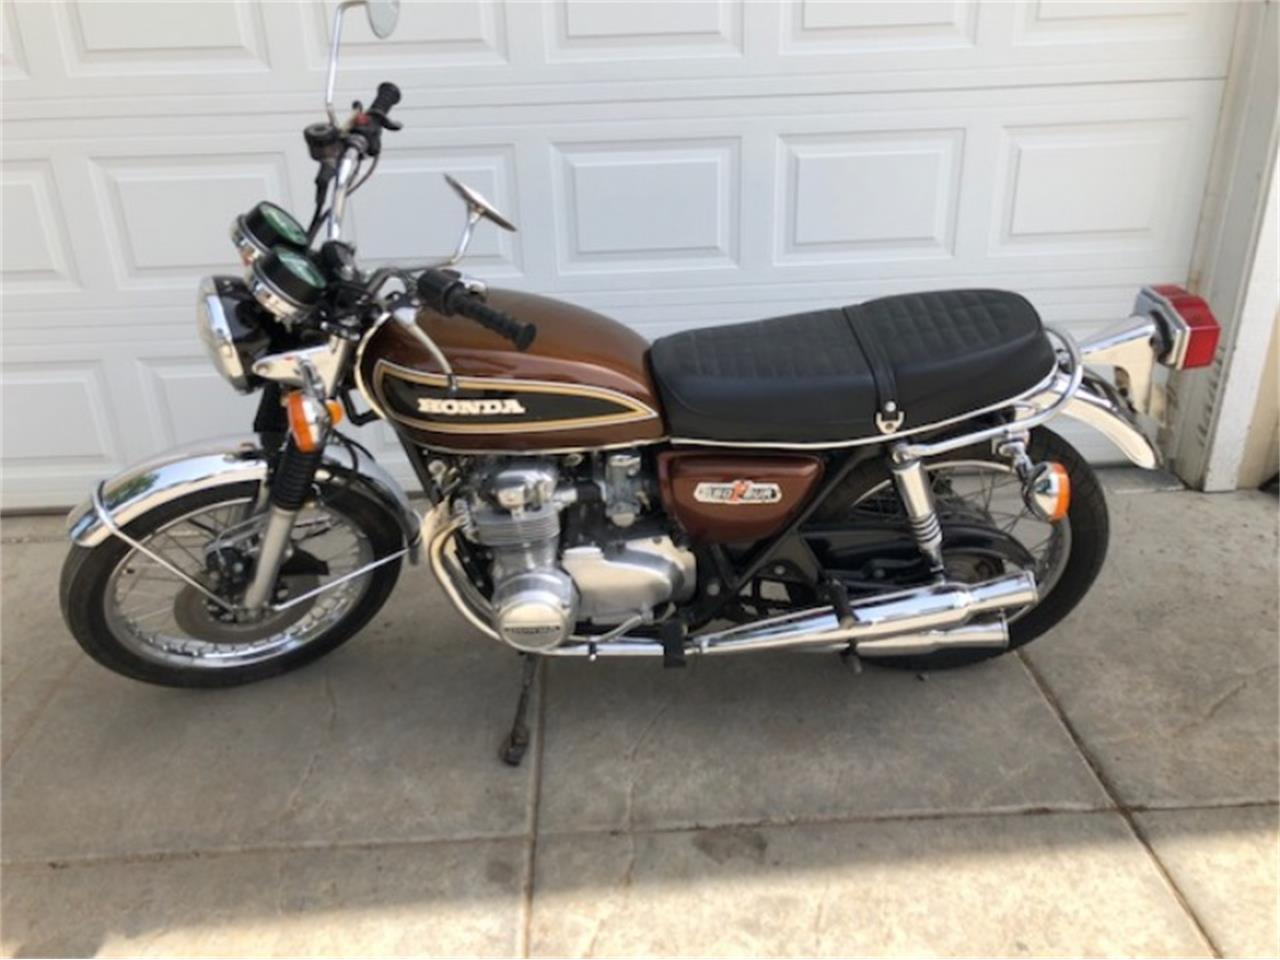 1976 Honda Cb550 4 Selling Motorcycle Collection For Sale